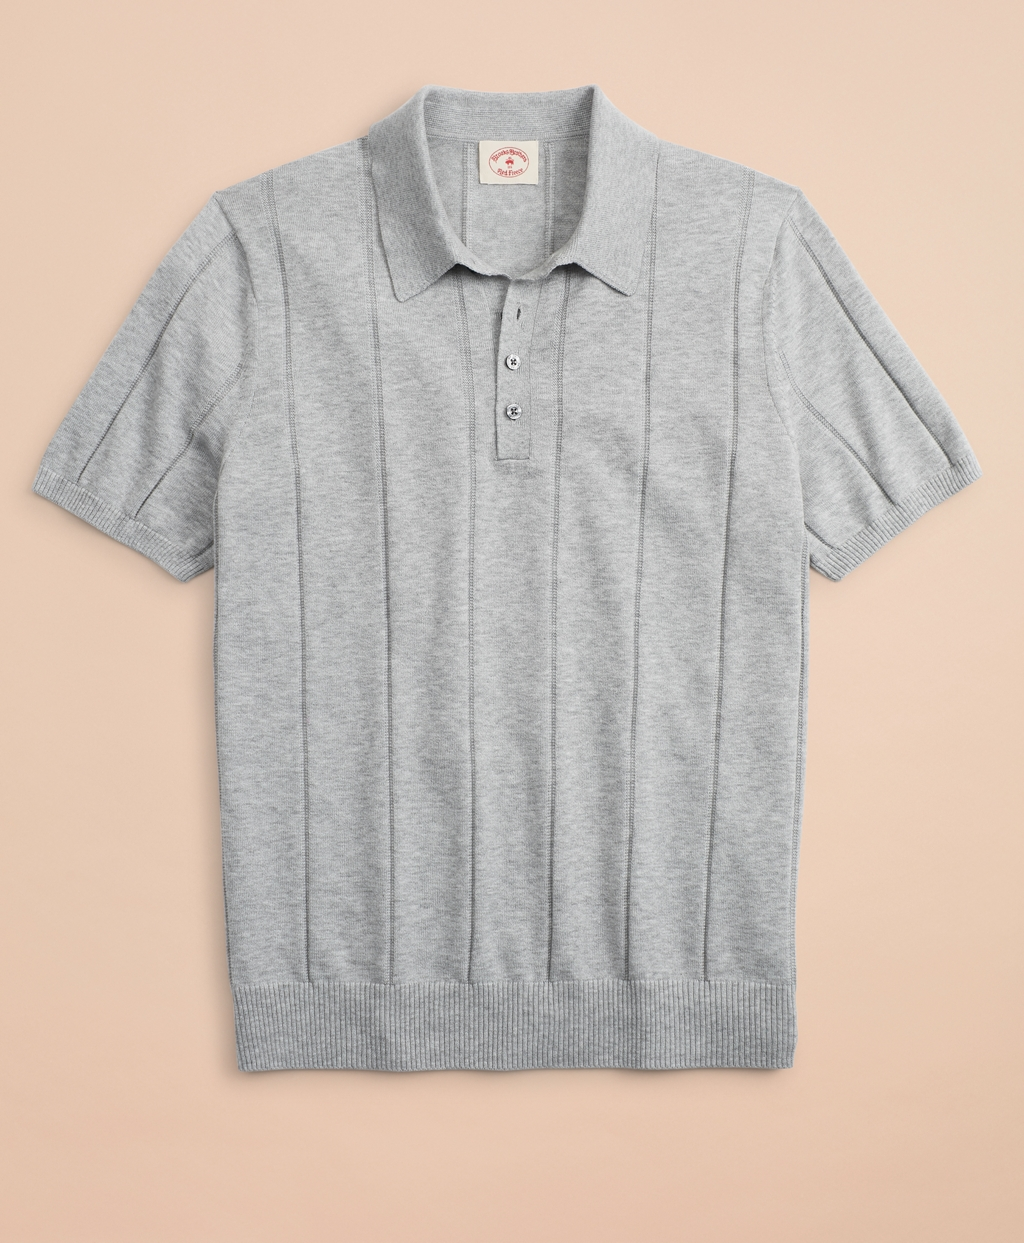 Retro Clothing for Men | Vintage Men's Fashion Brooks Brothers Mens Striped Cotton Sweater Polo $59.50 AT vintagedancer.com